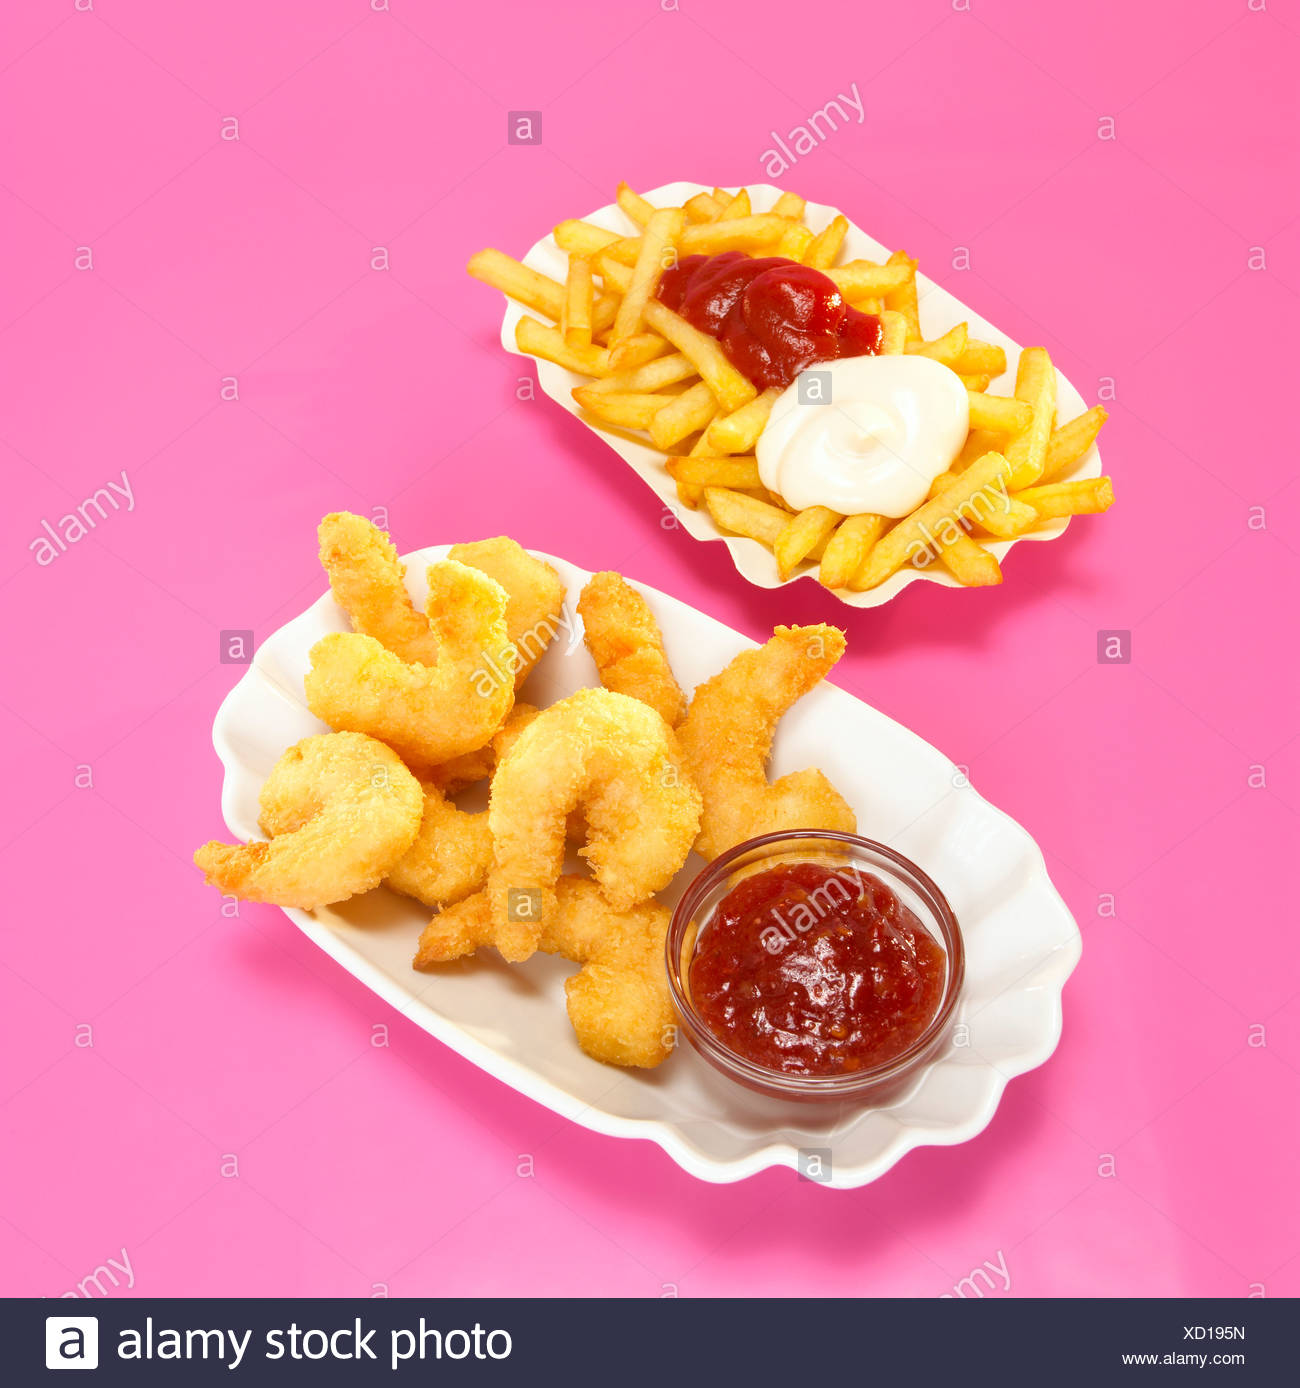 Fried prawns and french fries Stock Photo